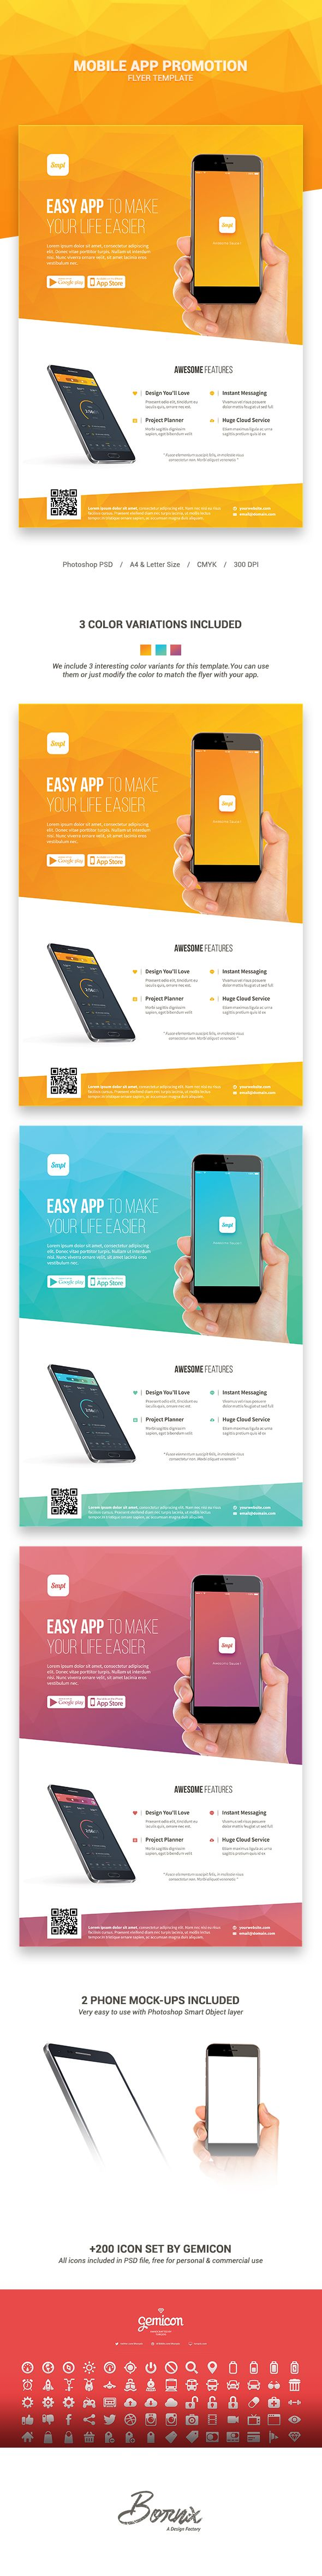 Poster design app - Mobile App Promotion Flyer Template